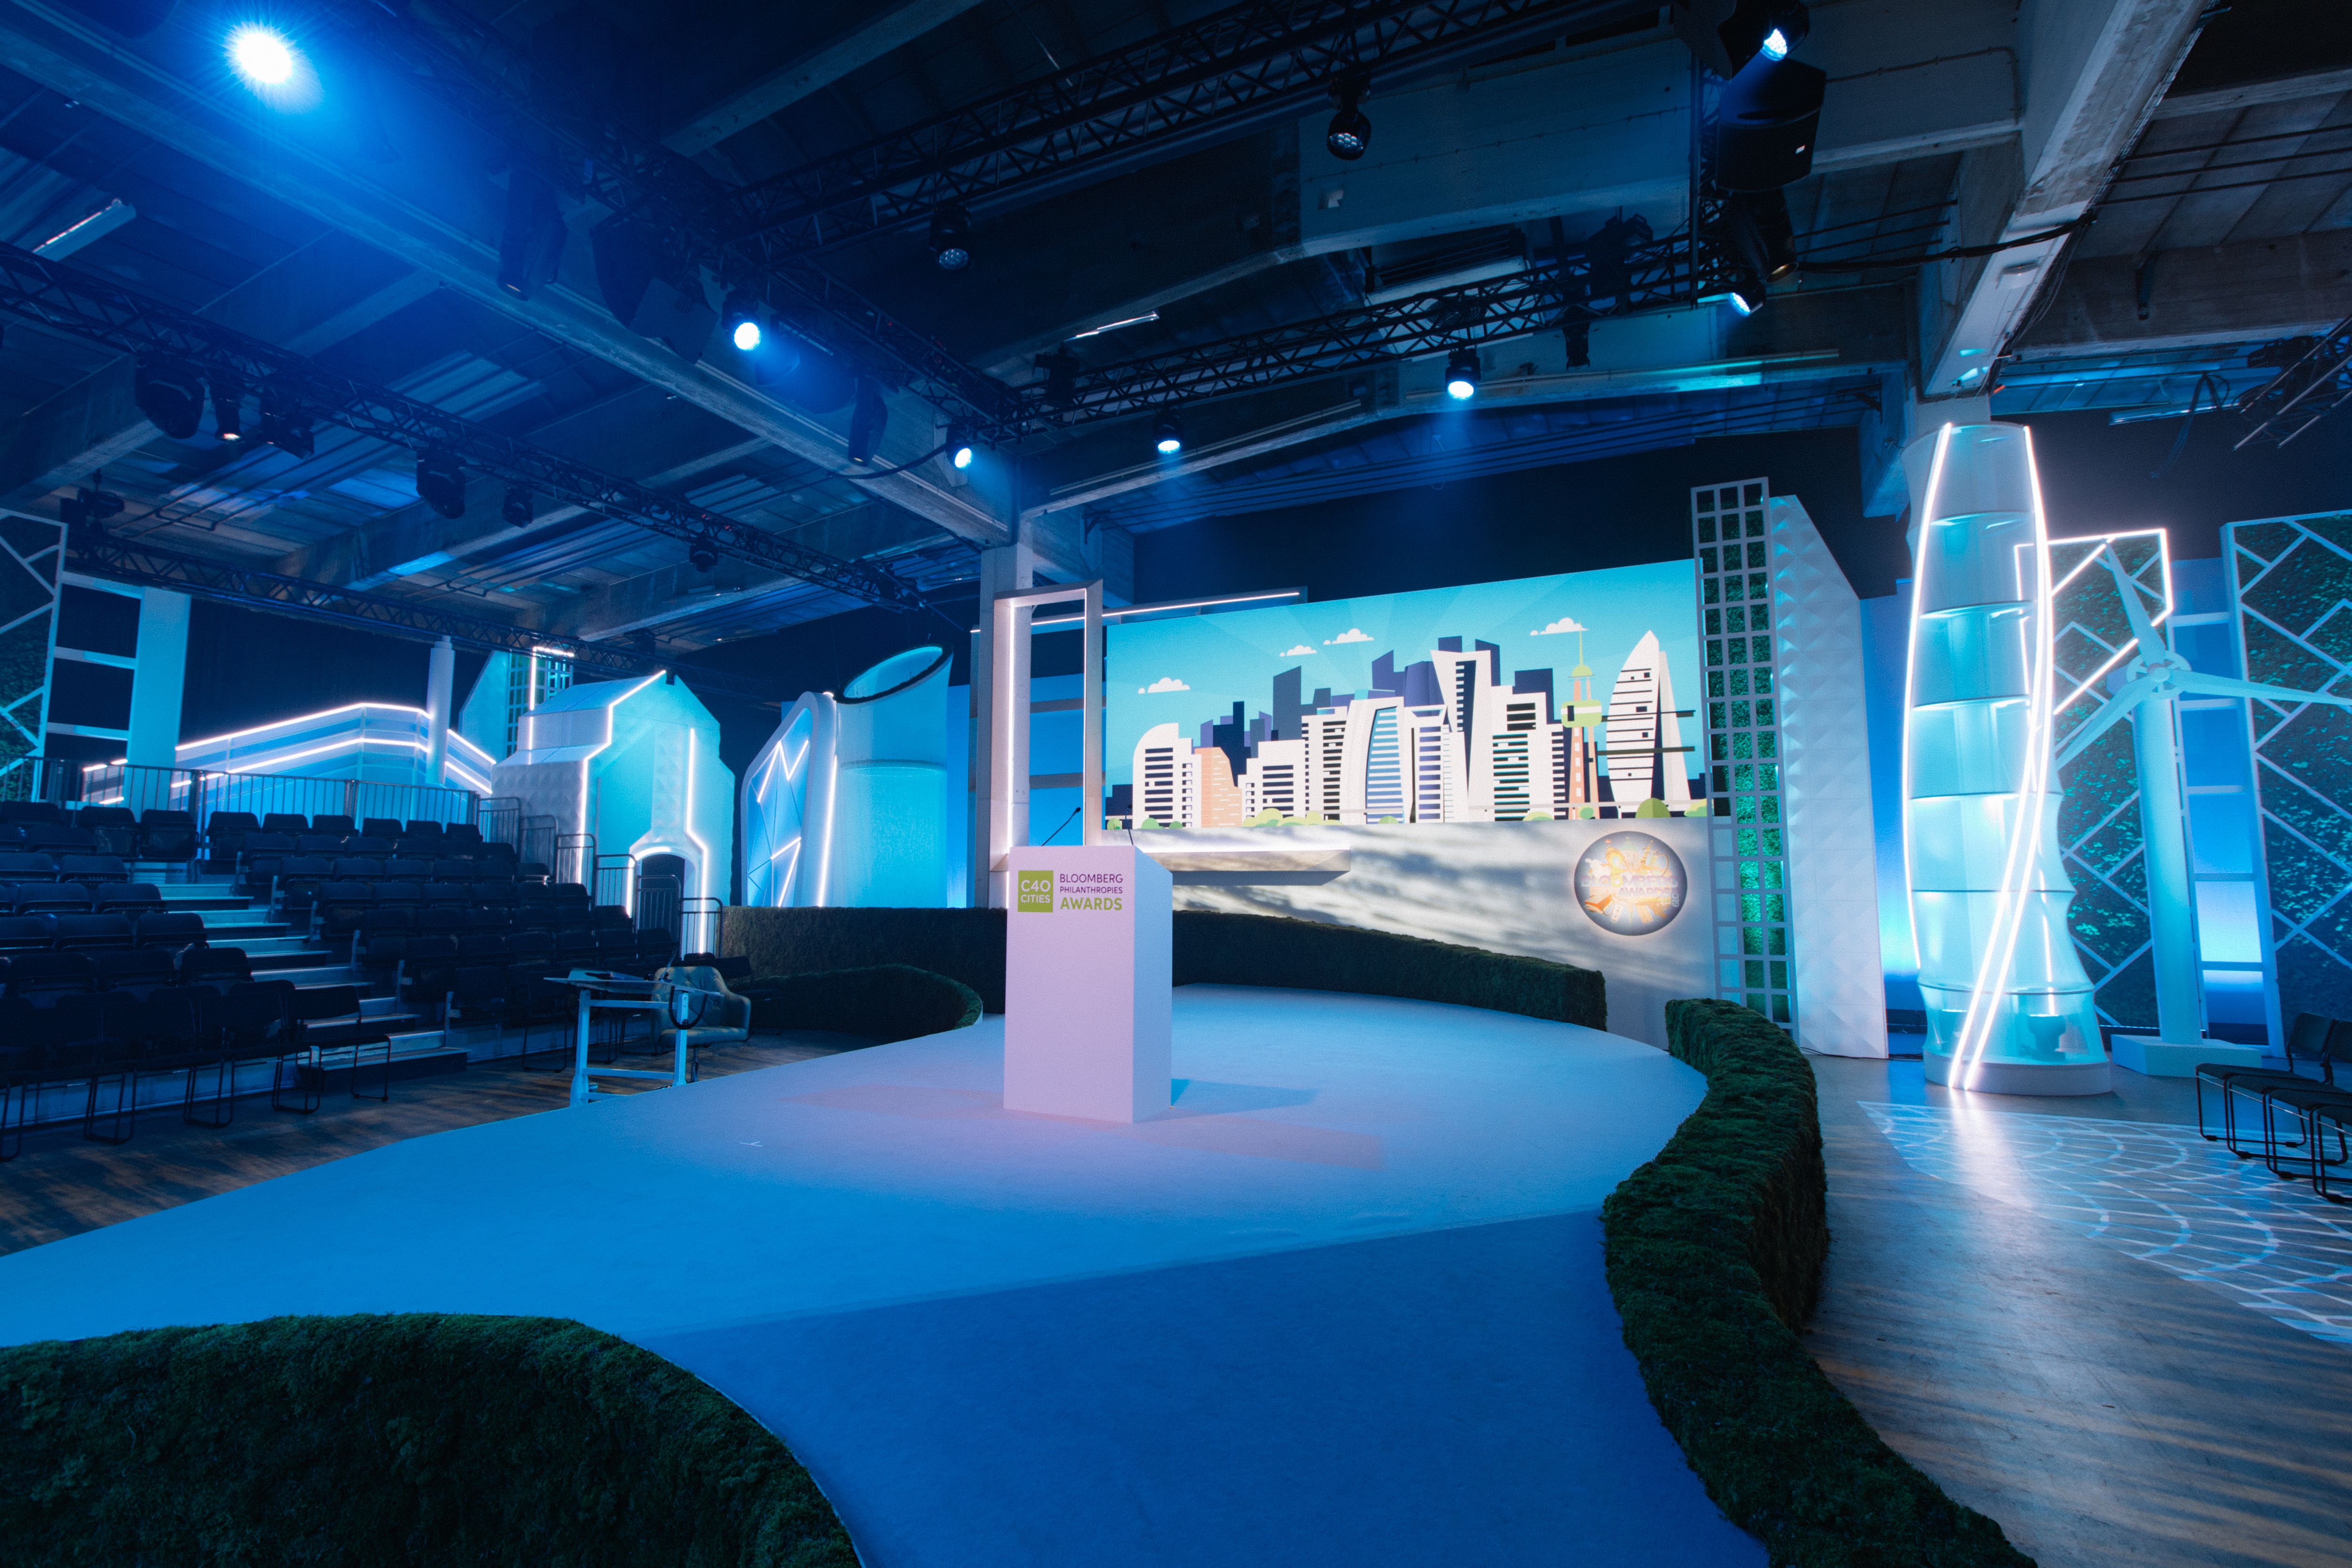 Bloomberg Philanthropies Awards Show in Copenhagen